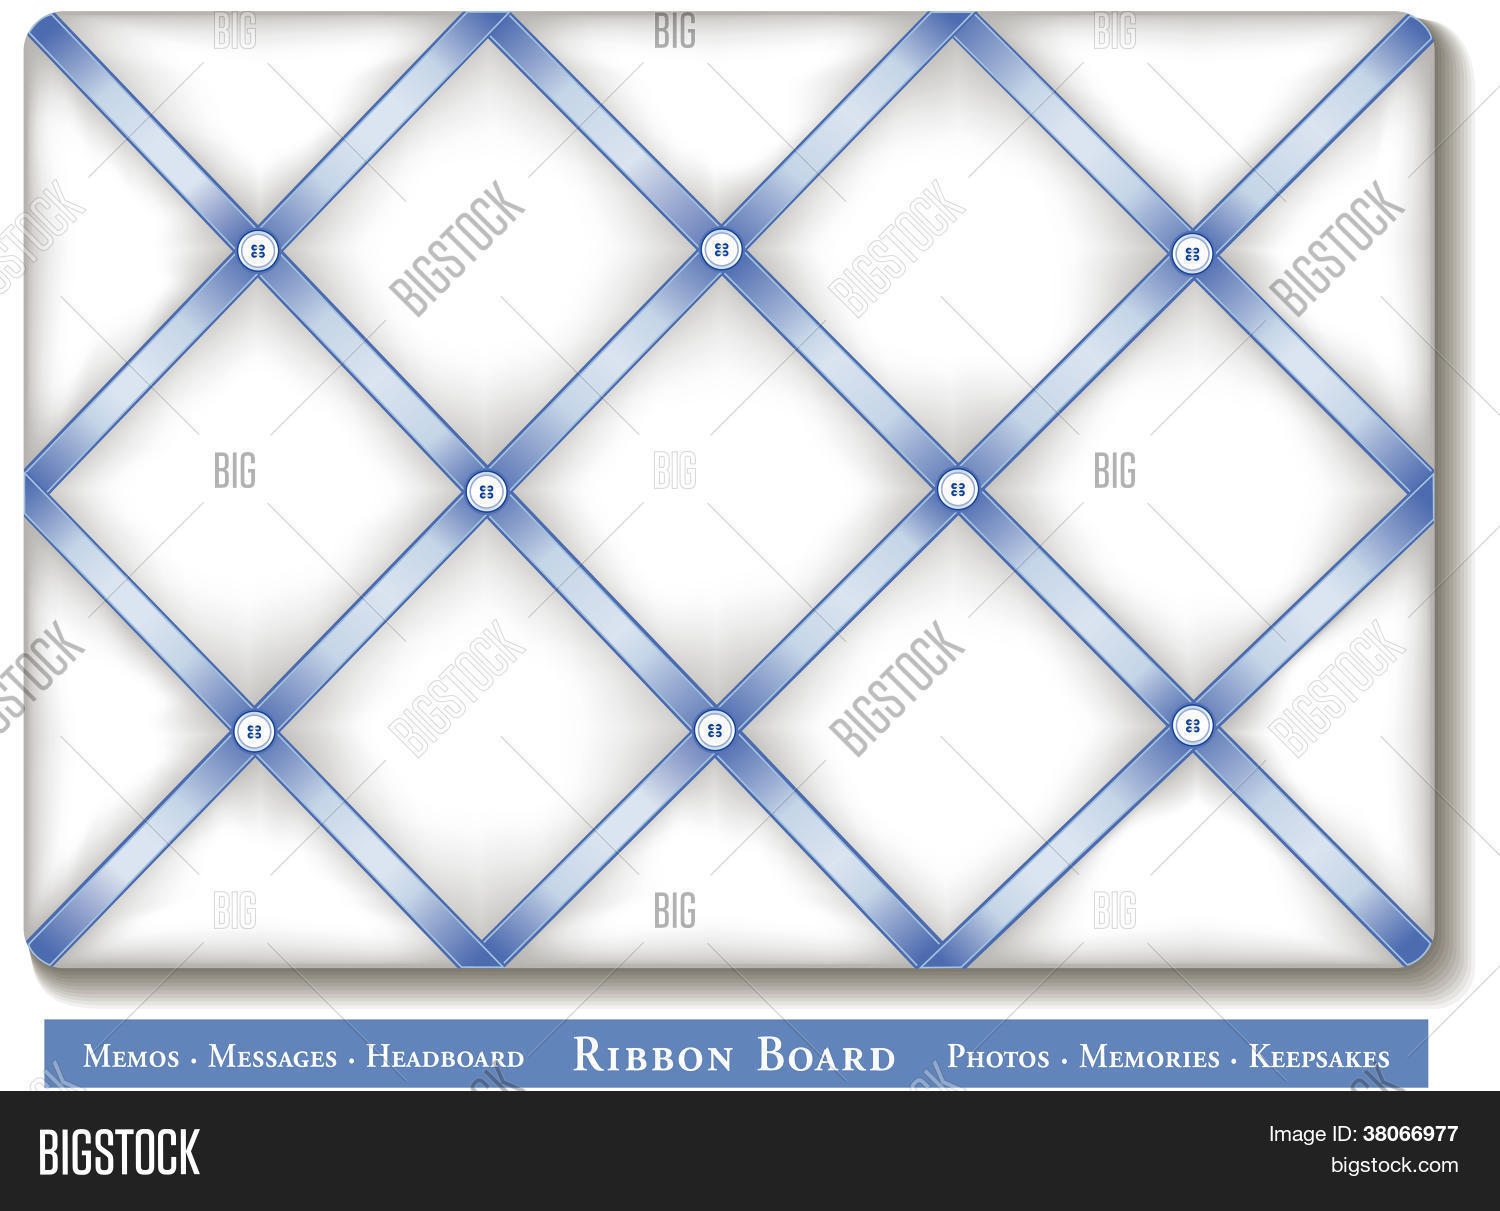 Ribbon Bulletin Board Vector Photo Free Trial Bigstock